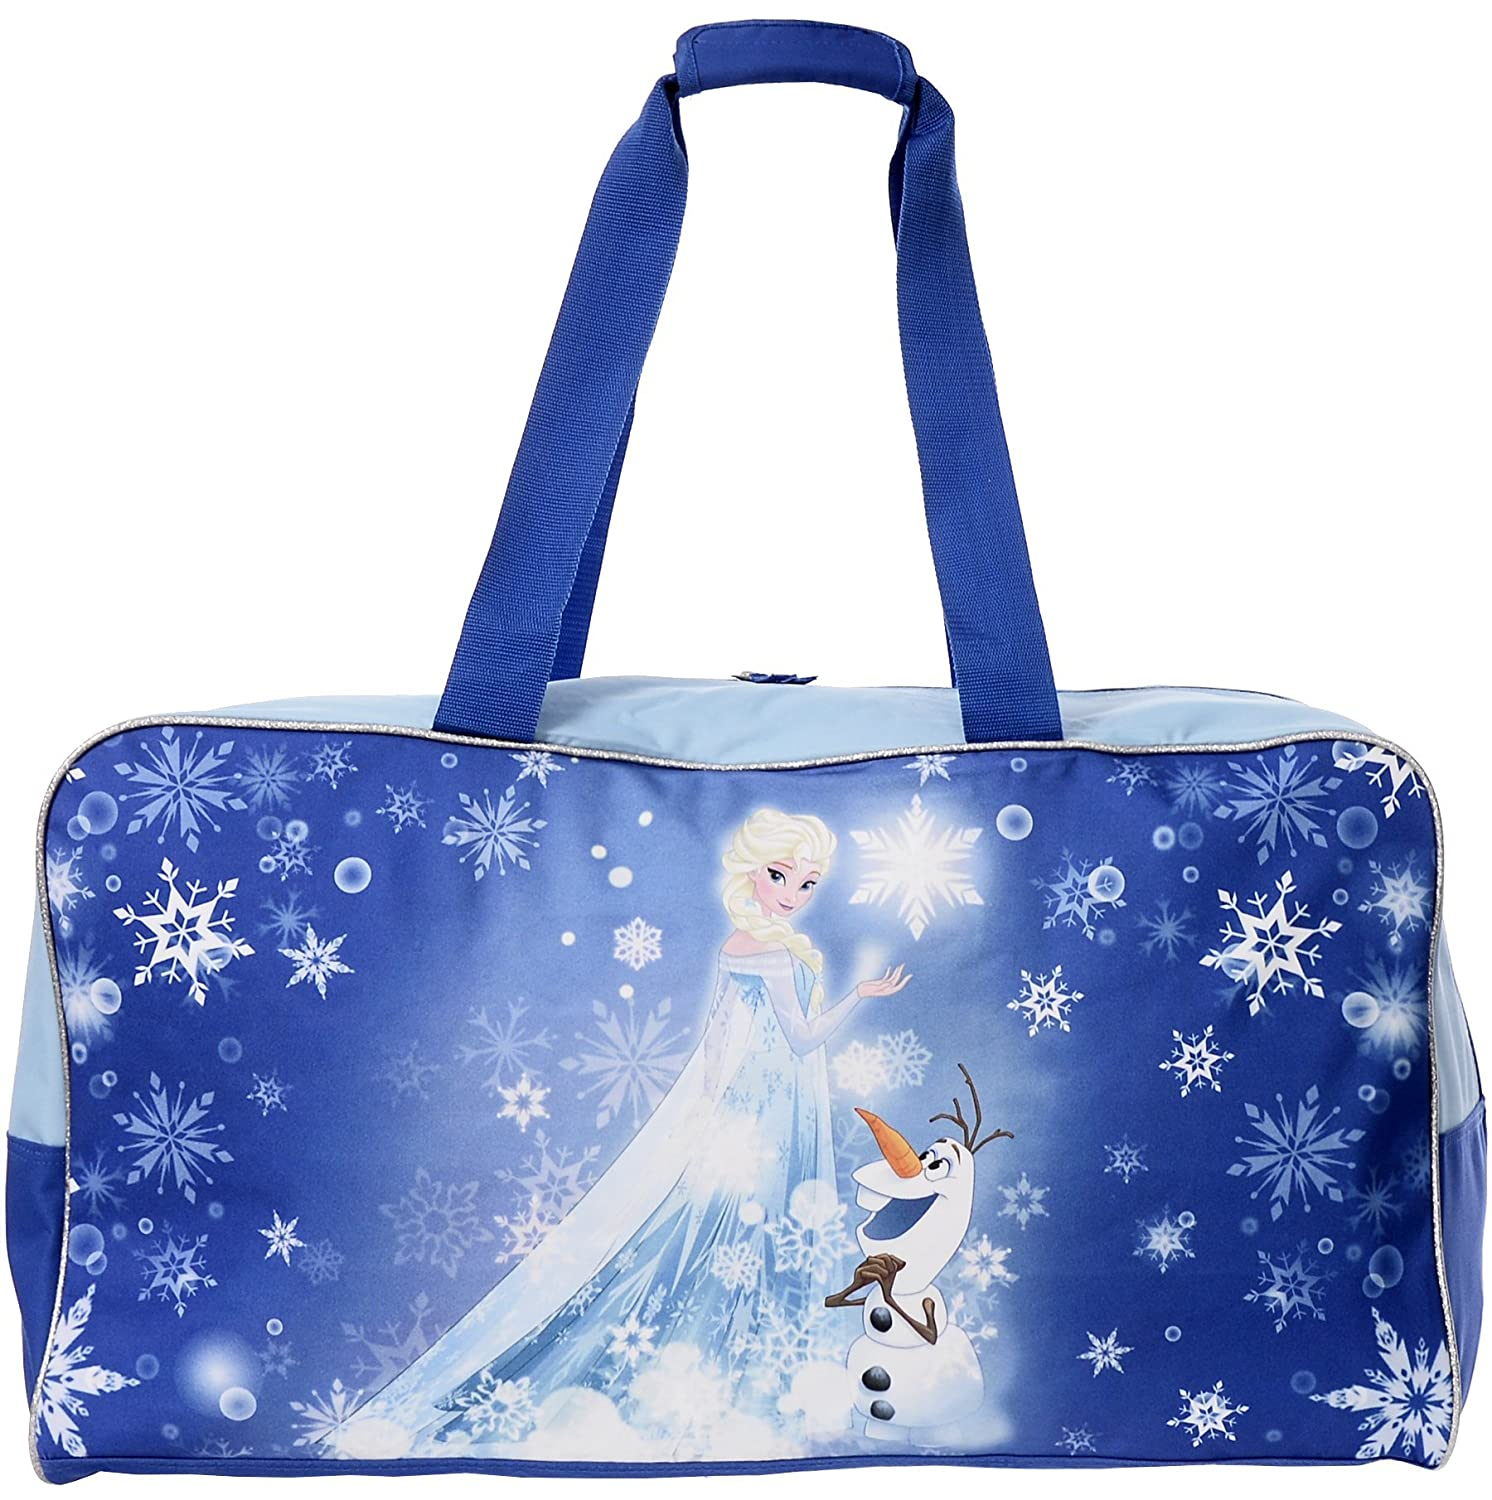 Disney Frozen Kid's Elsa and Olaf Duffle Travel Bag Travelway K0869_FRHB_BLU